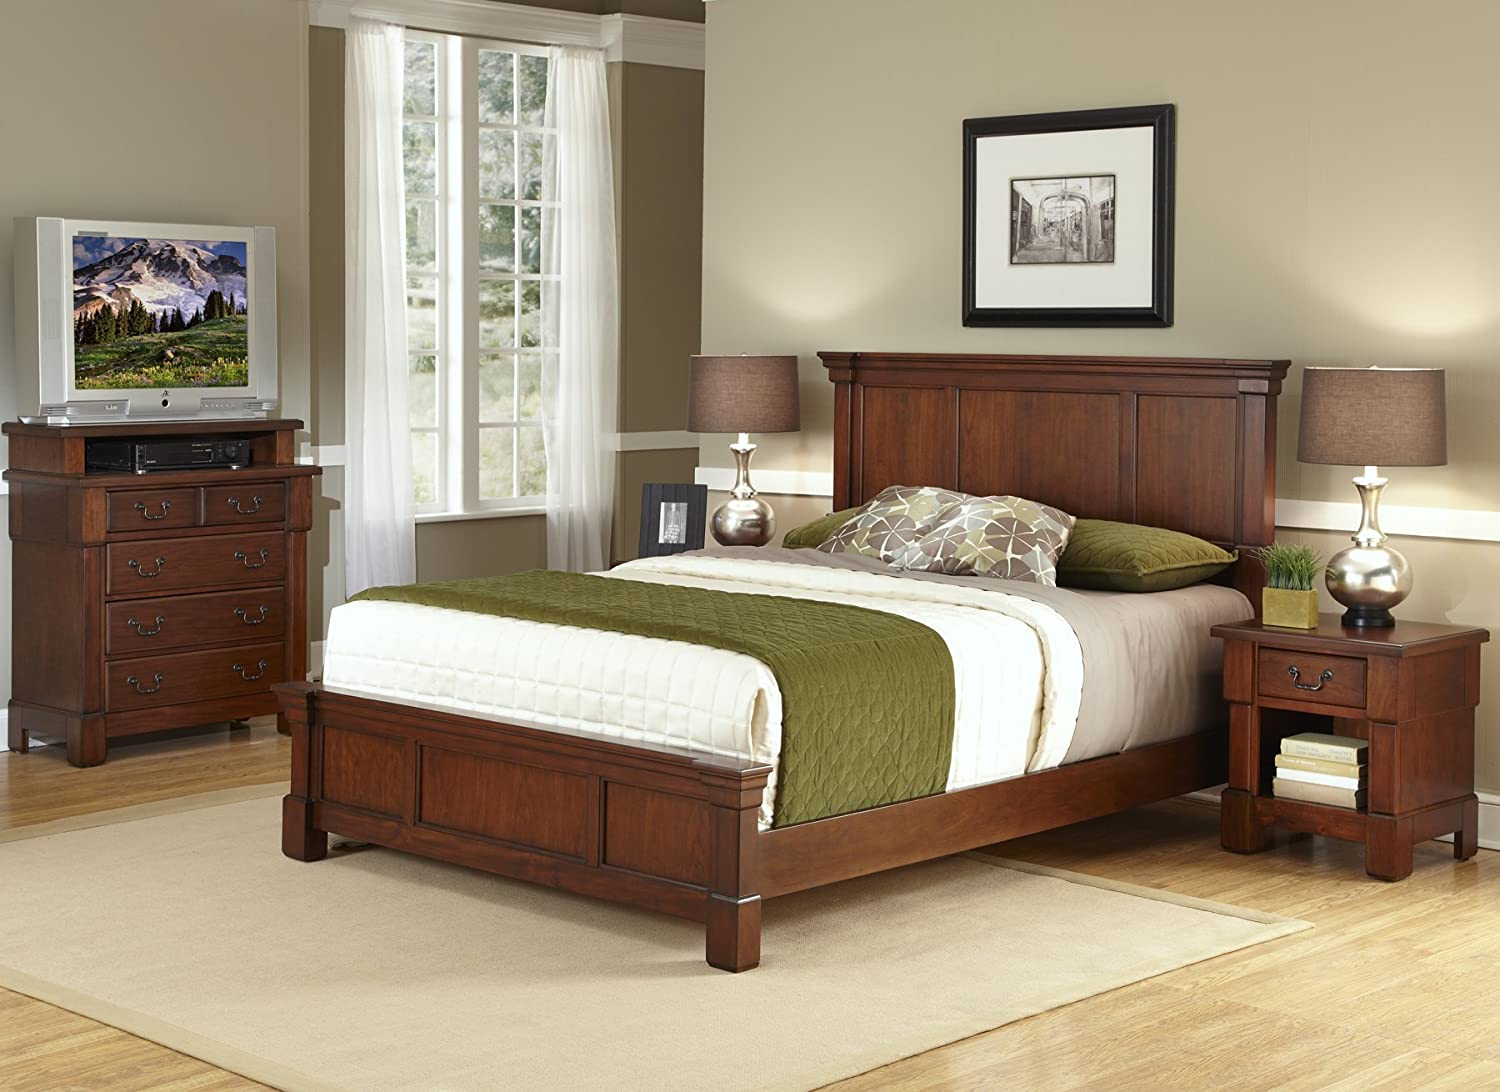 Home Styles The Aspen Collection Queen Bed - Media Chest and Night Stand